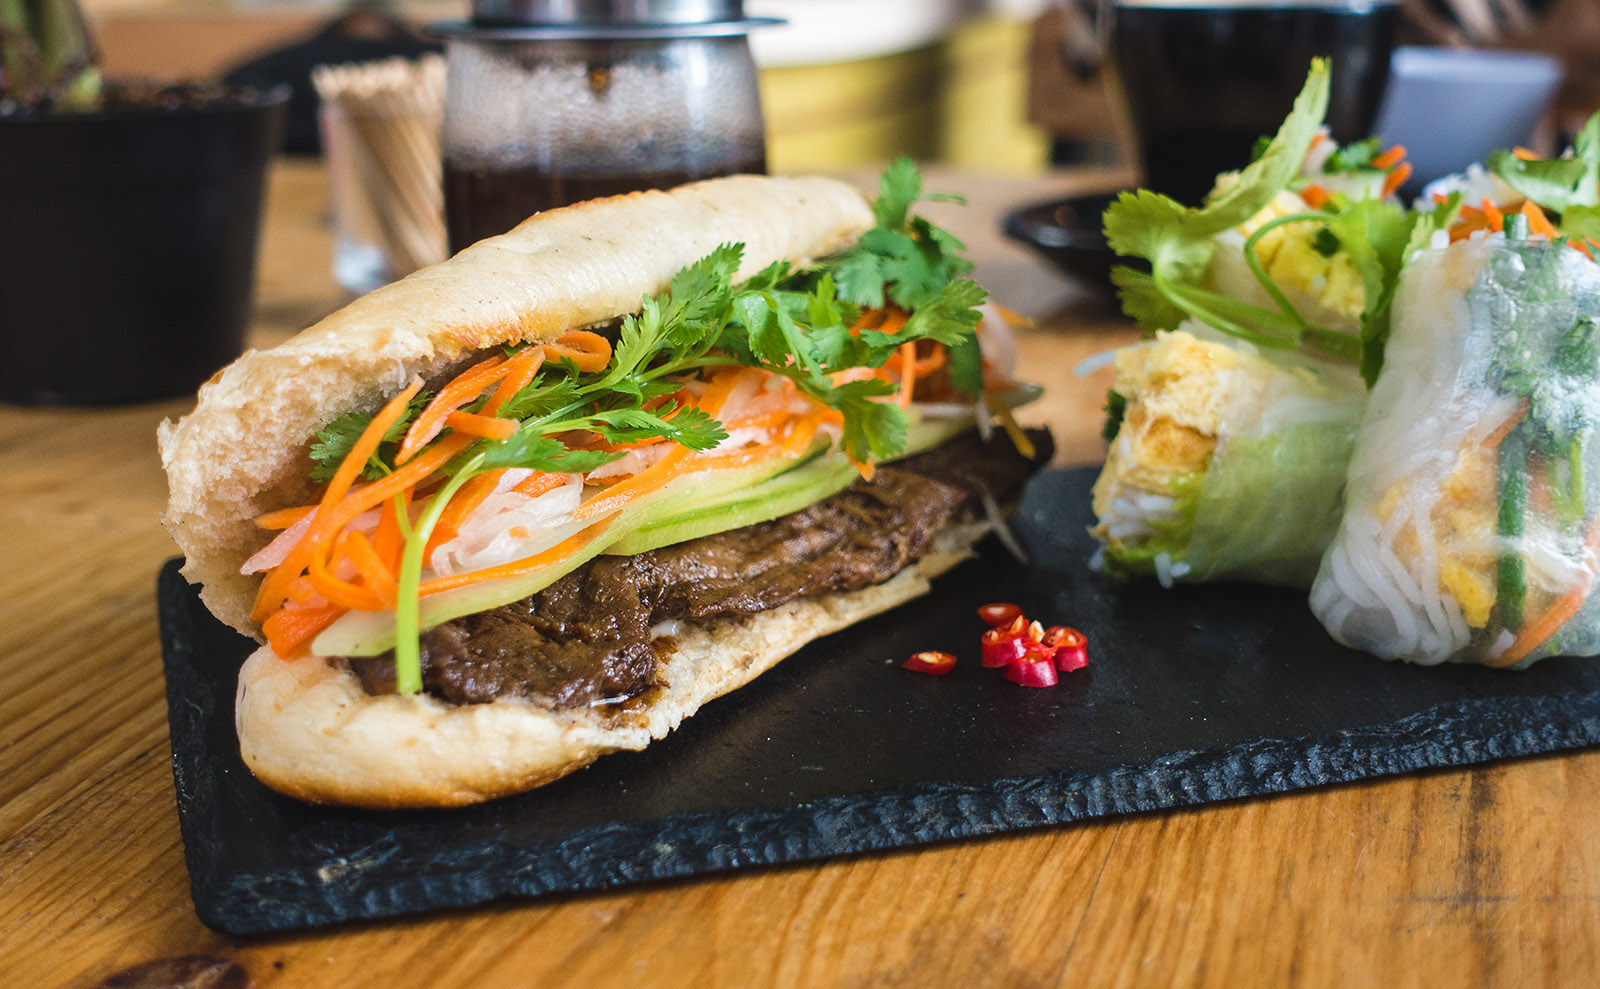 banh mi sandwich on a wooden table